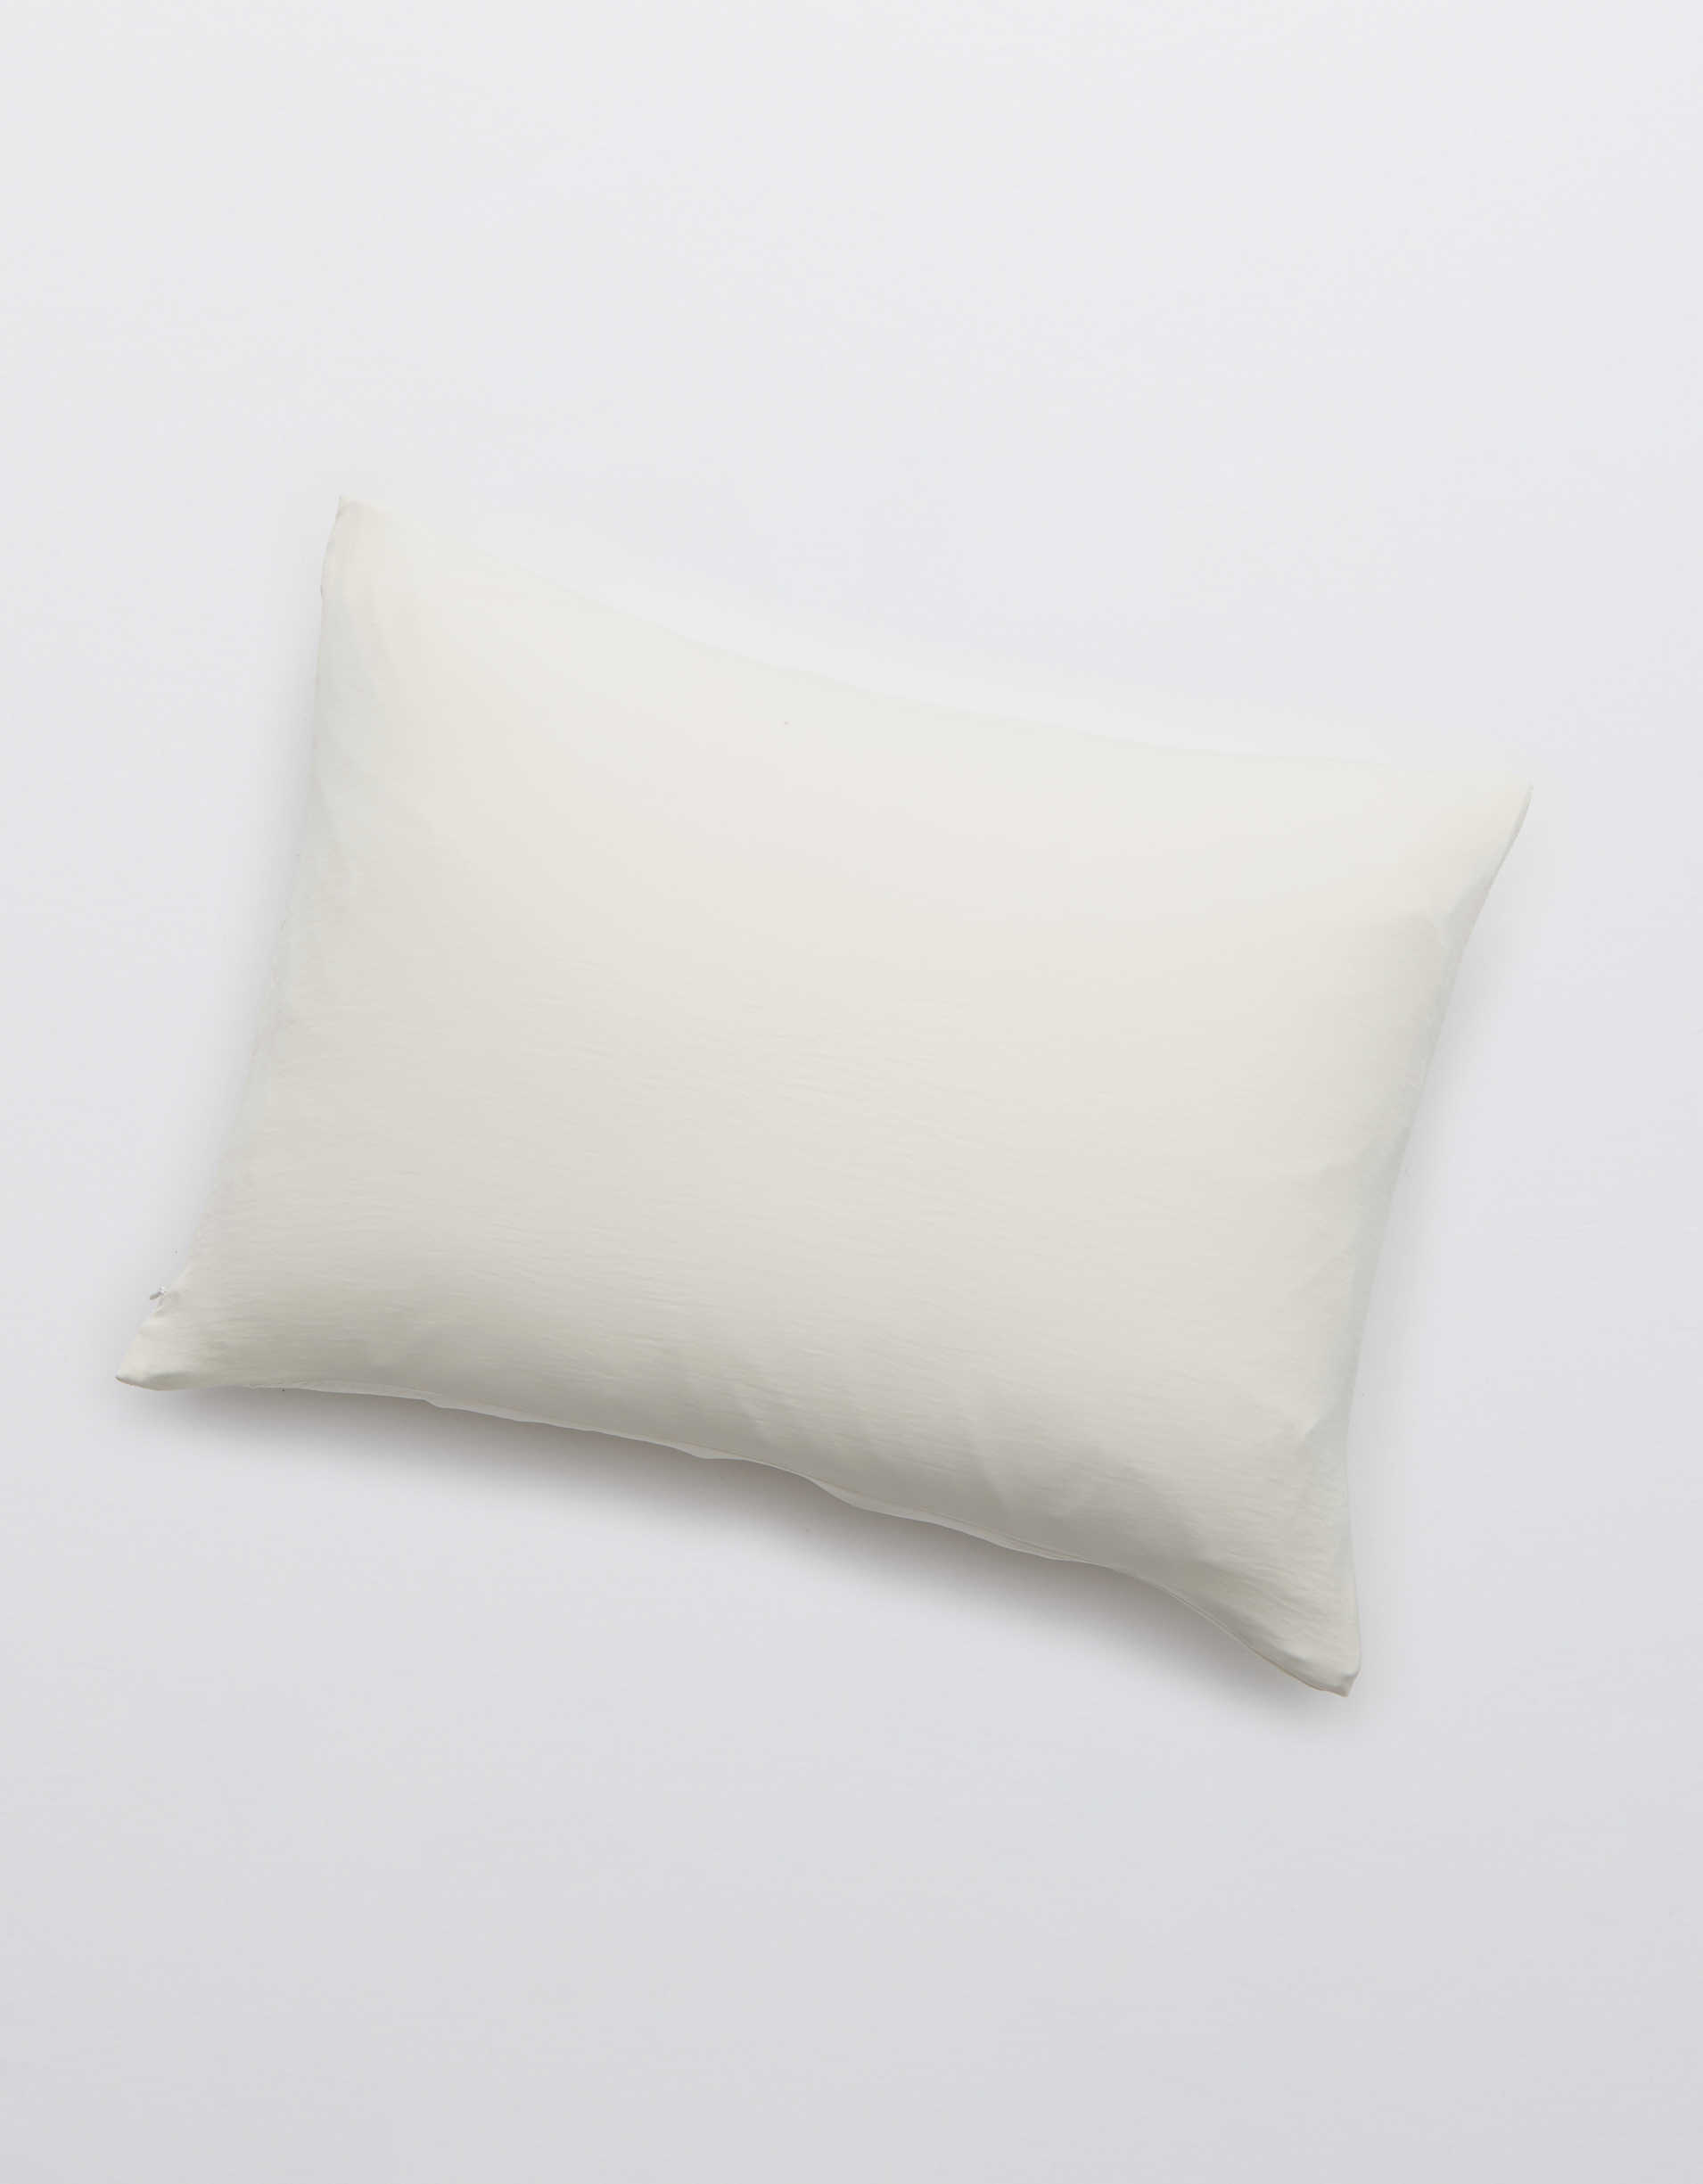 Aerie Satin Pillowcase